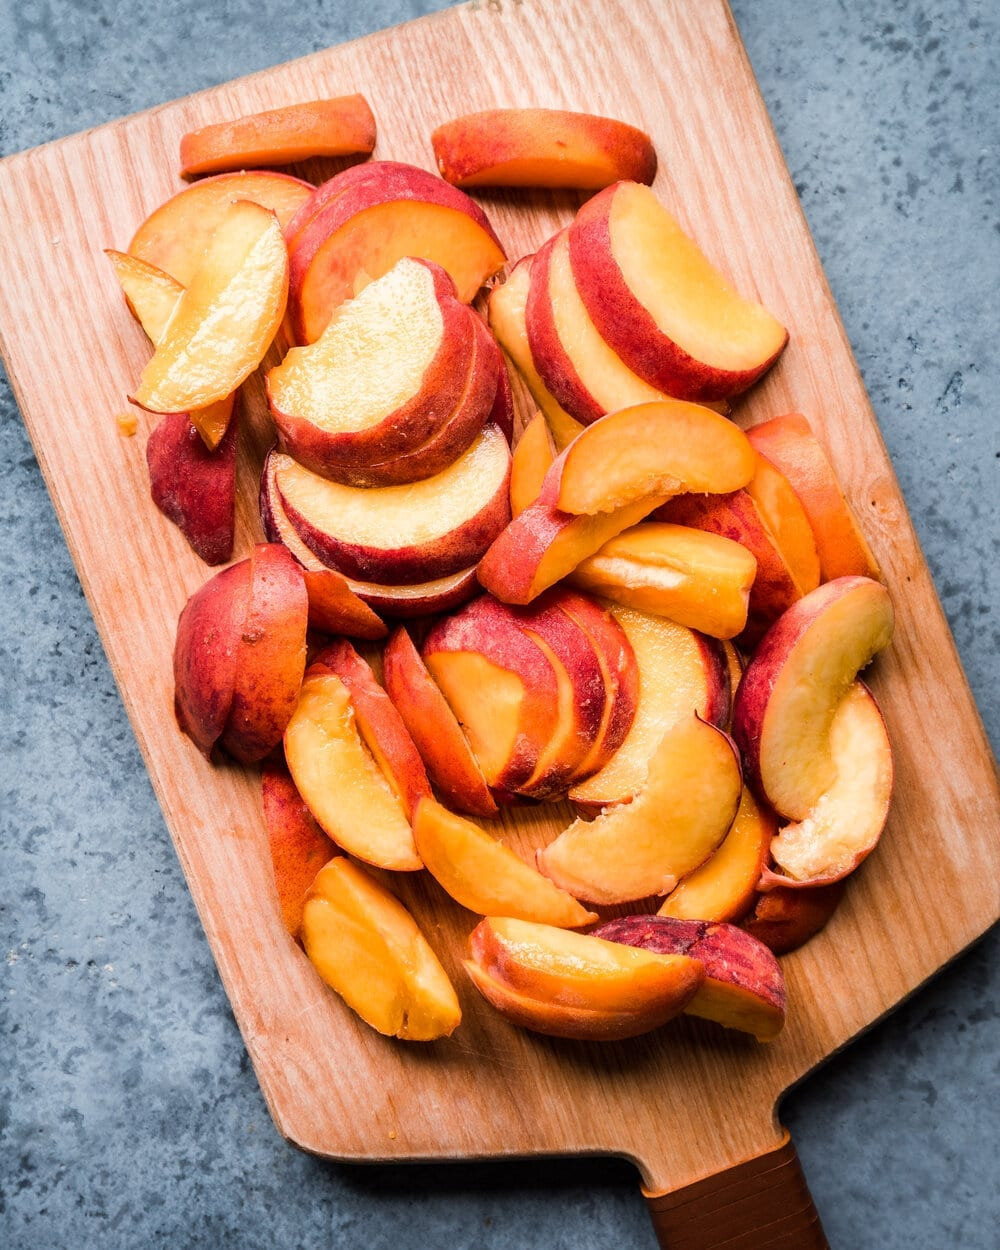 sliced peaches on wooden cutting board